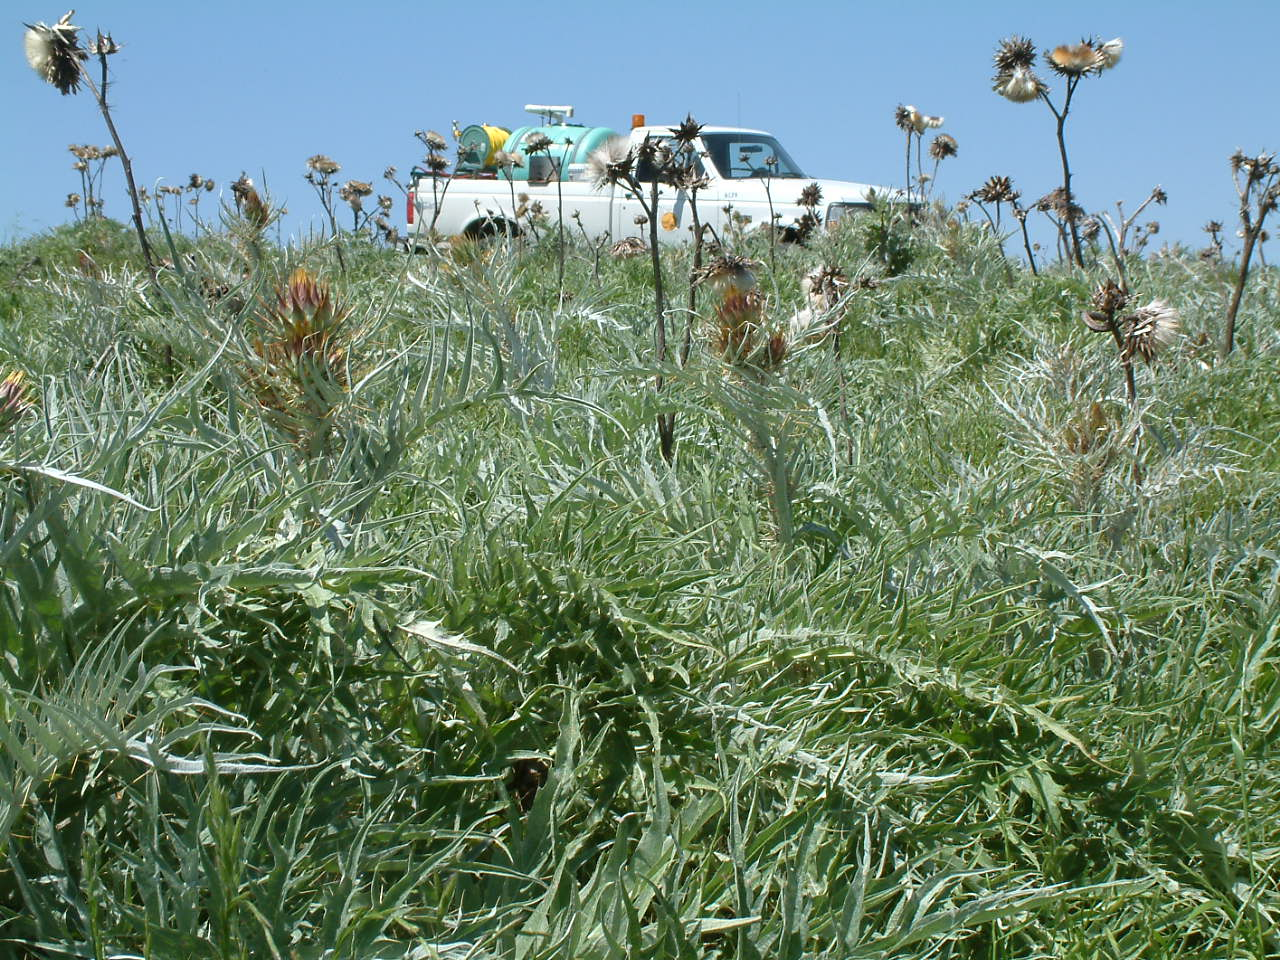 Artichoke thistle at Wilcat Canyon with county truck in background